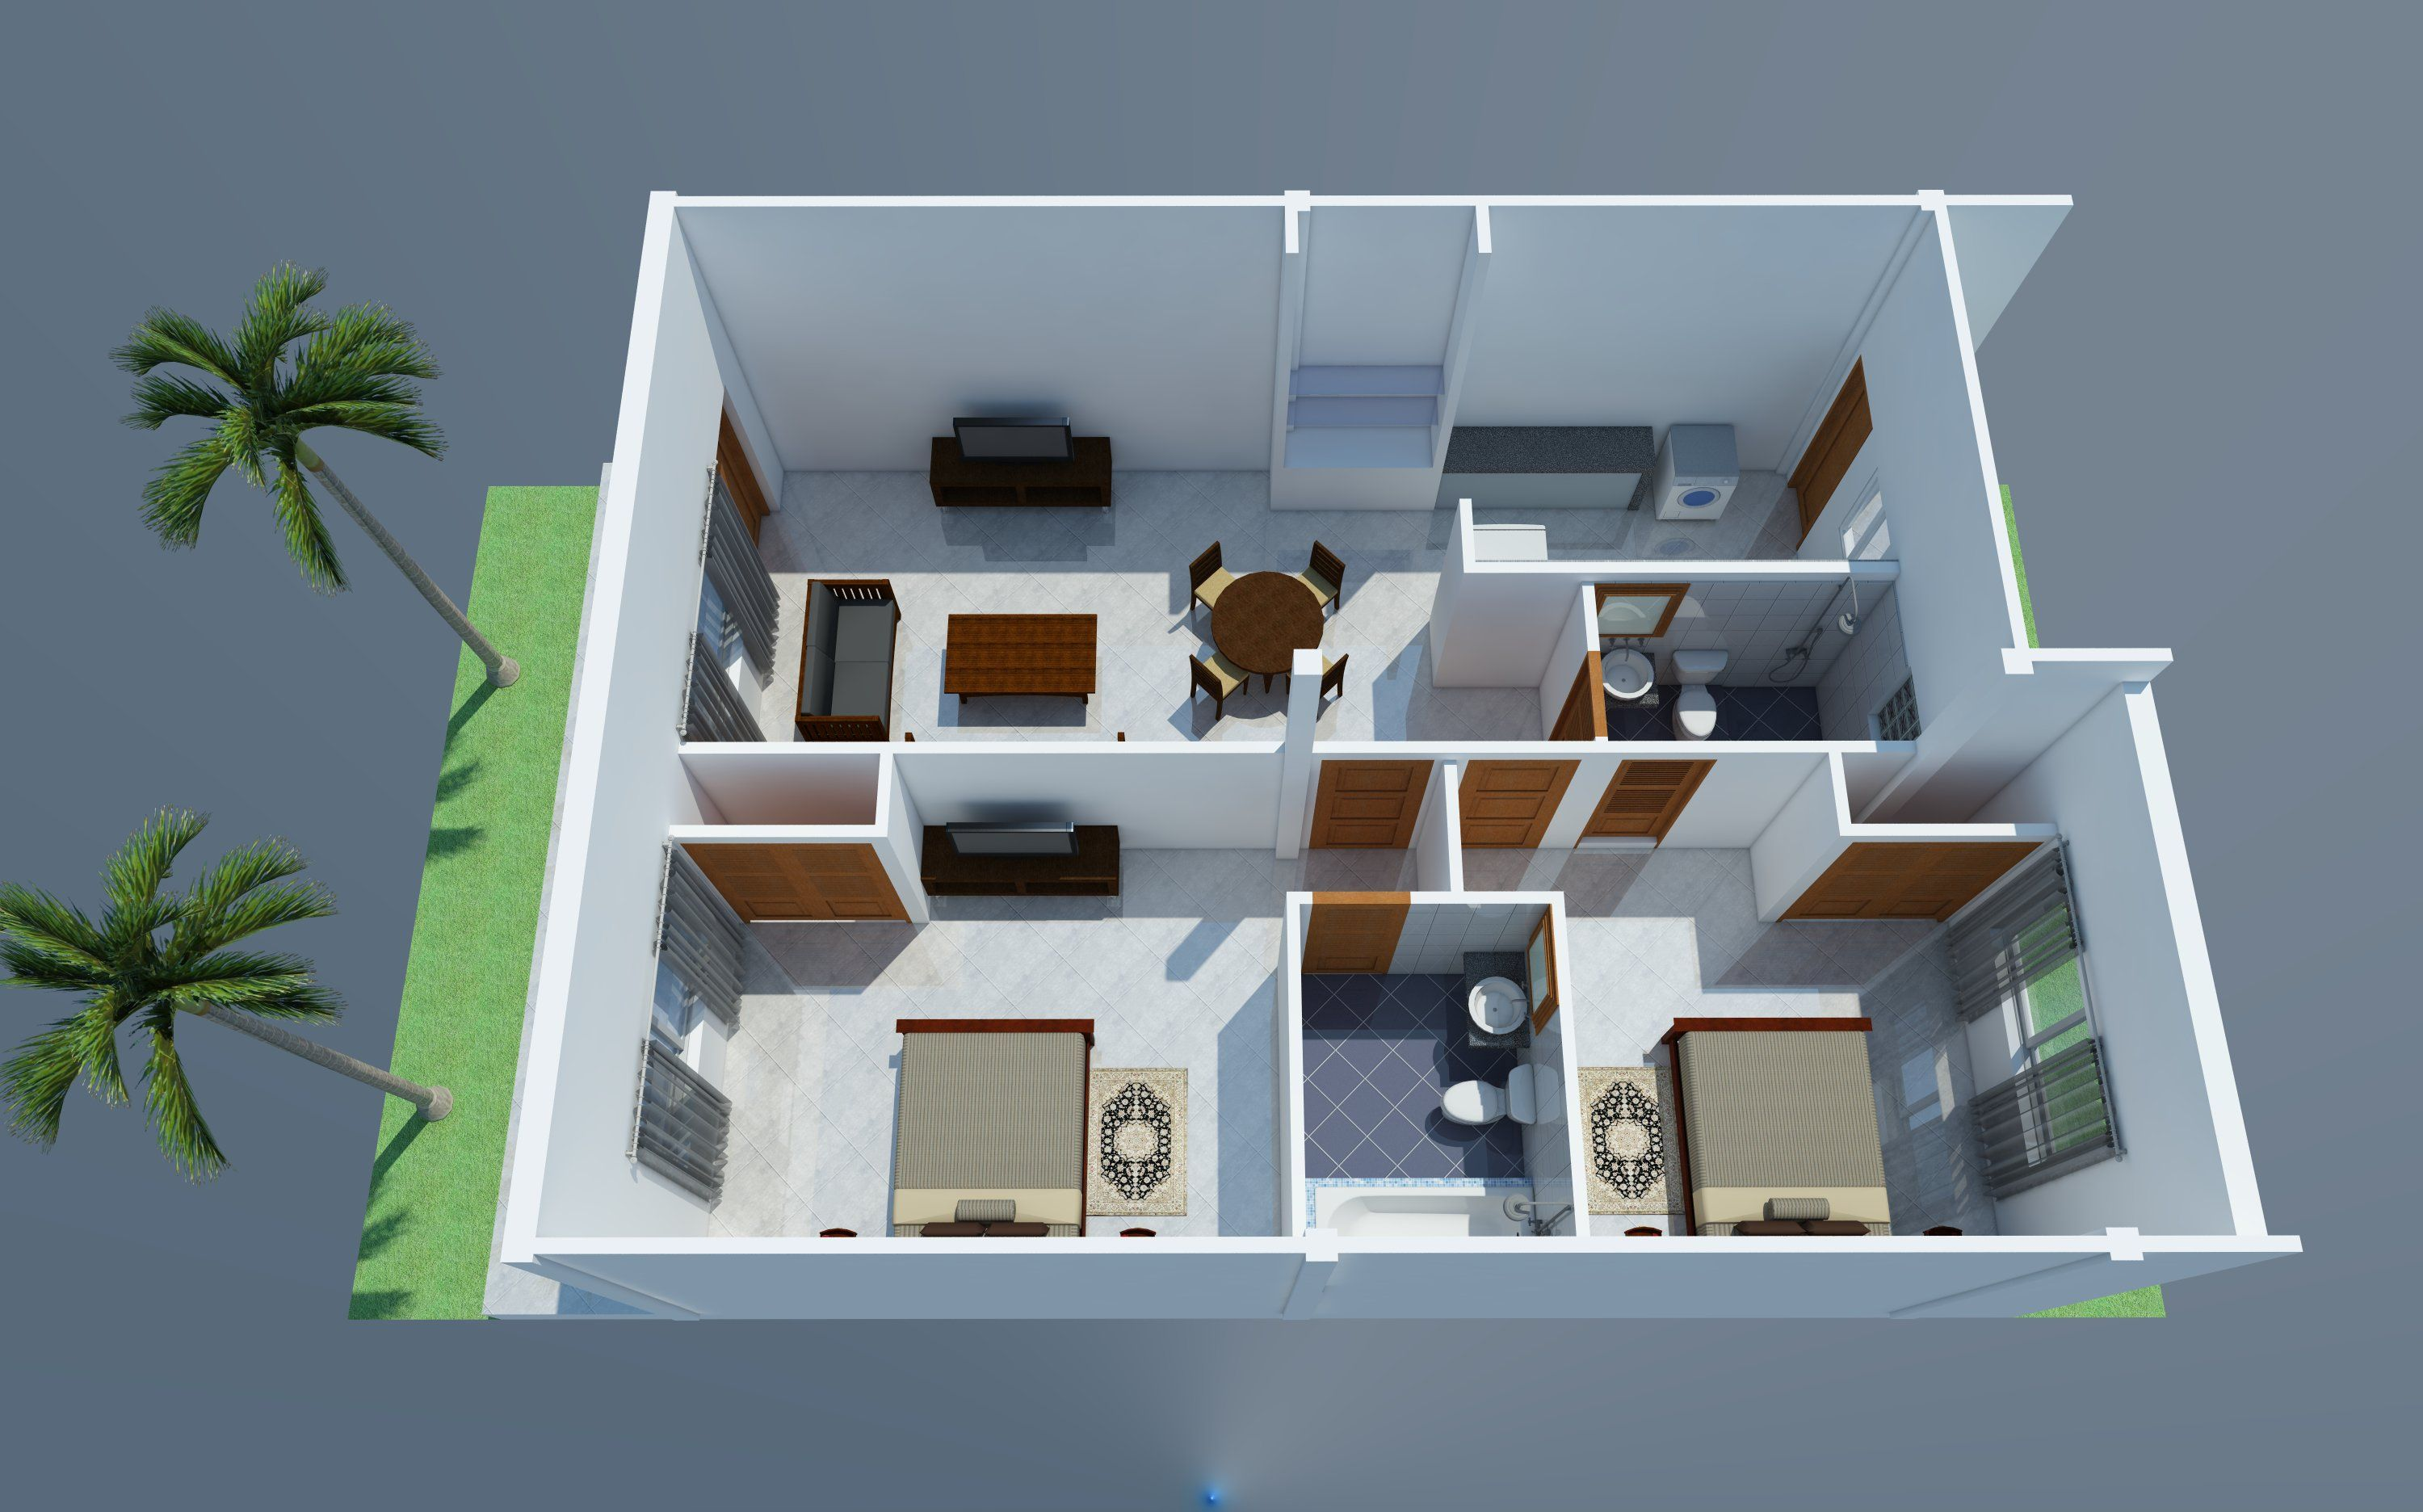 Apartment Plans 10x30 With 18 Units House Plans Free Downloads Apartment Plans House Plans Apartment Architecture